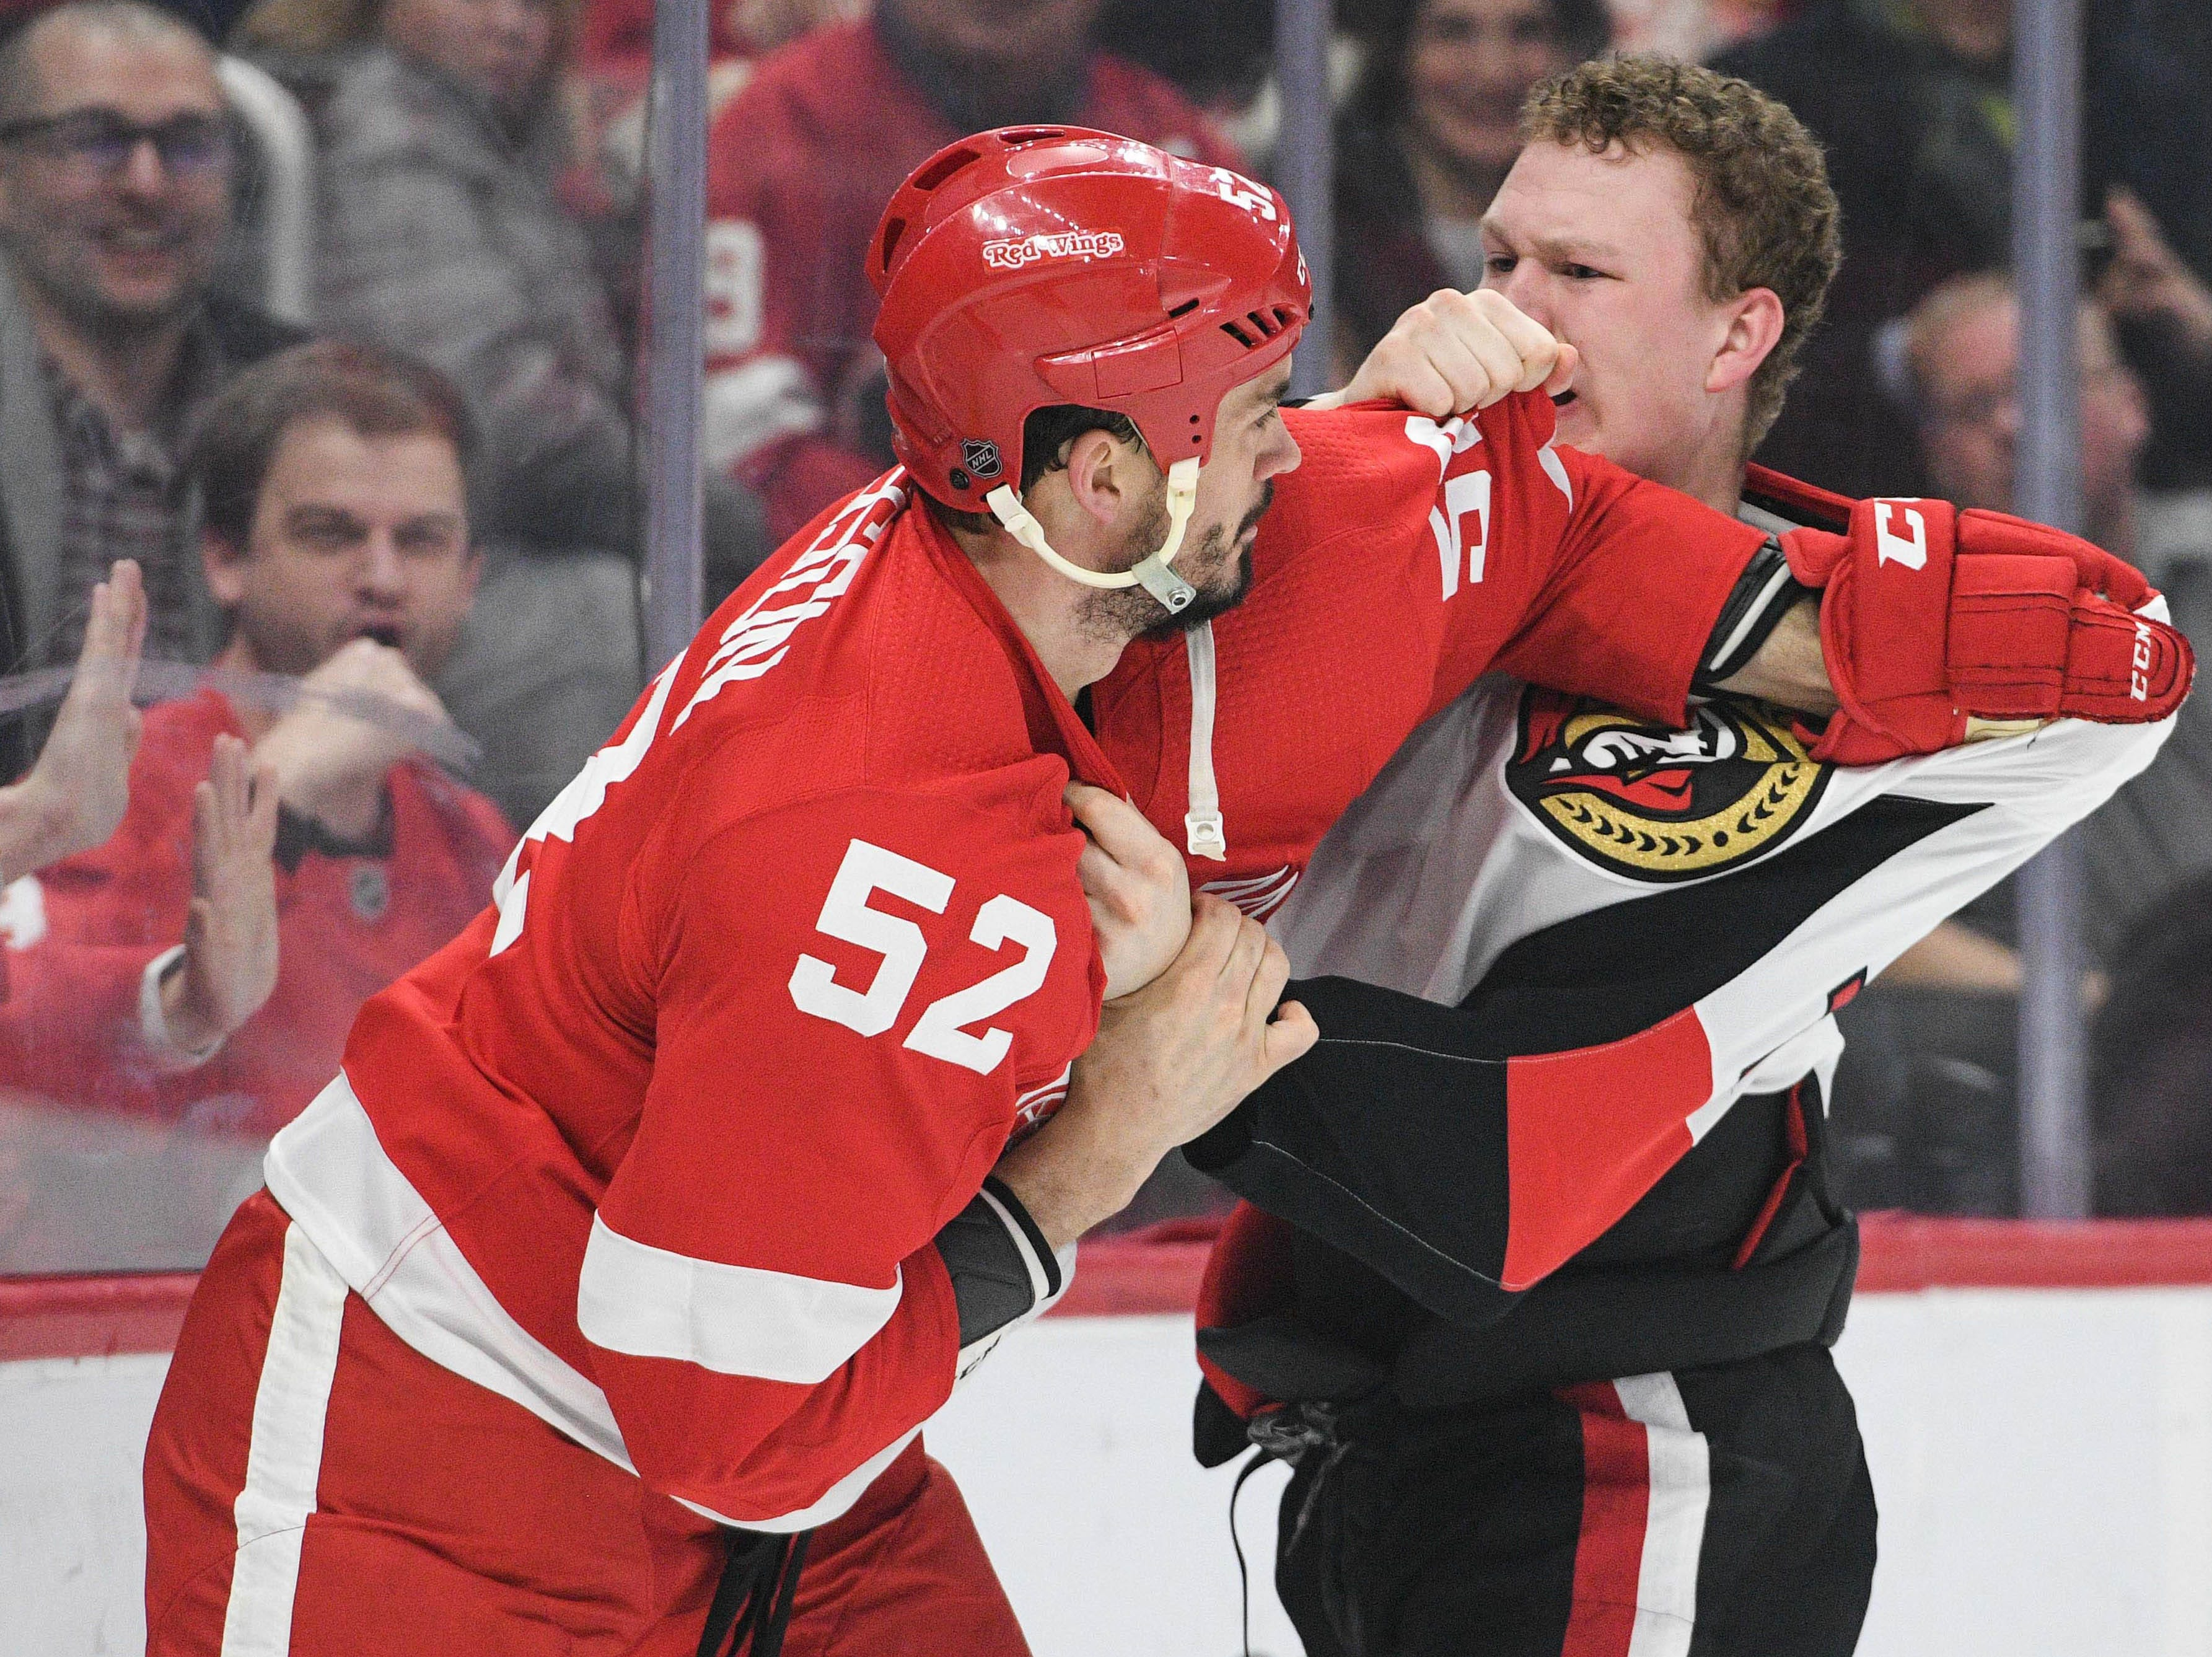 Feb. 14: Detroit Red Wings' Jonathan Ericsson vs. Ottawa Senators' Brady Tkachuk.